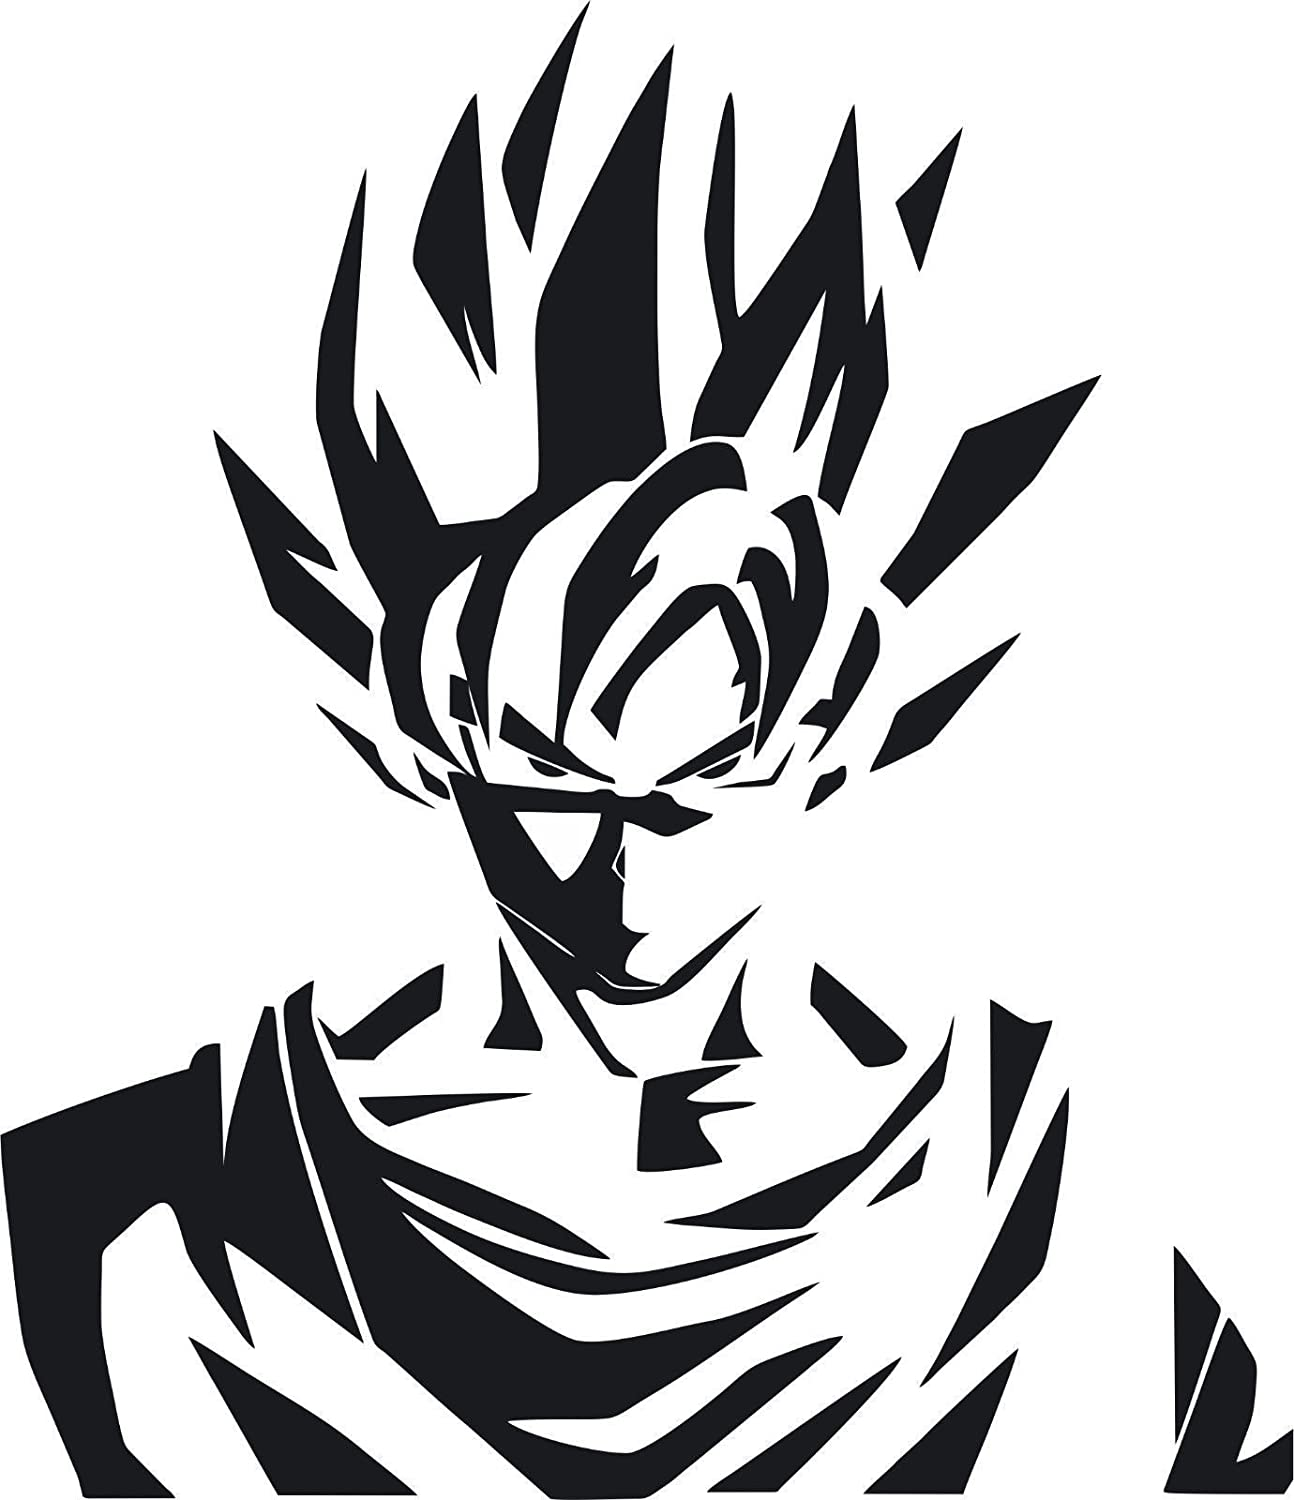 Dbz dragon ball z goku super saiyan black 12 inch die cut vinyl decal for windows cars trucks toolbox laptops macbook virtually any hard smooth